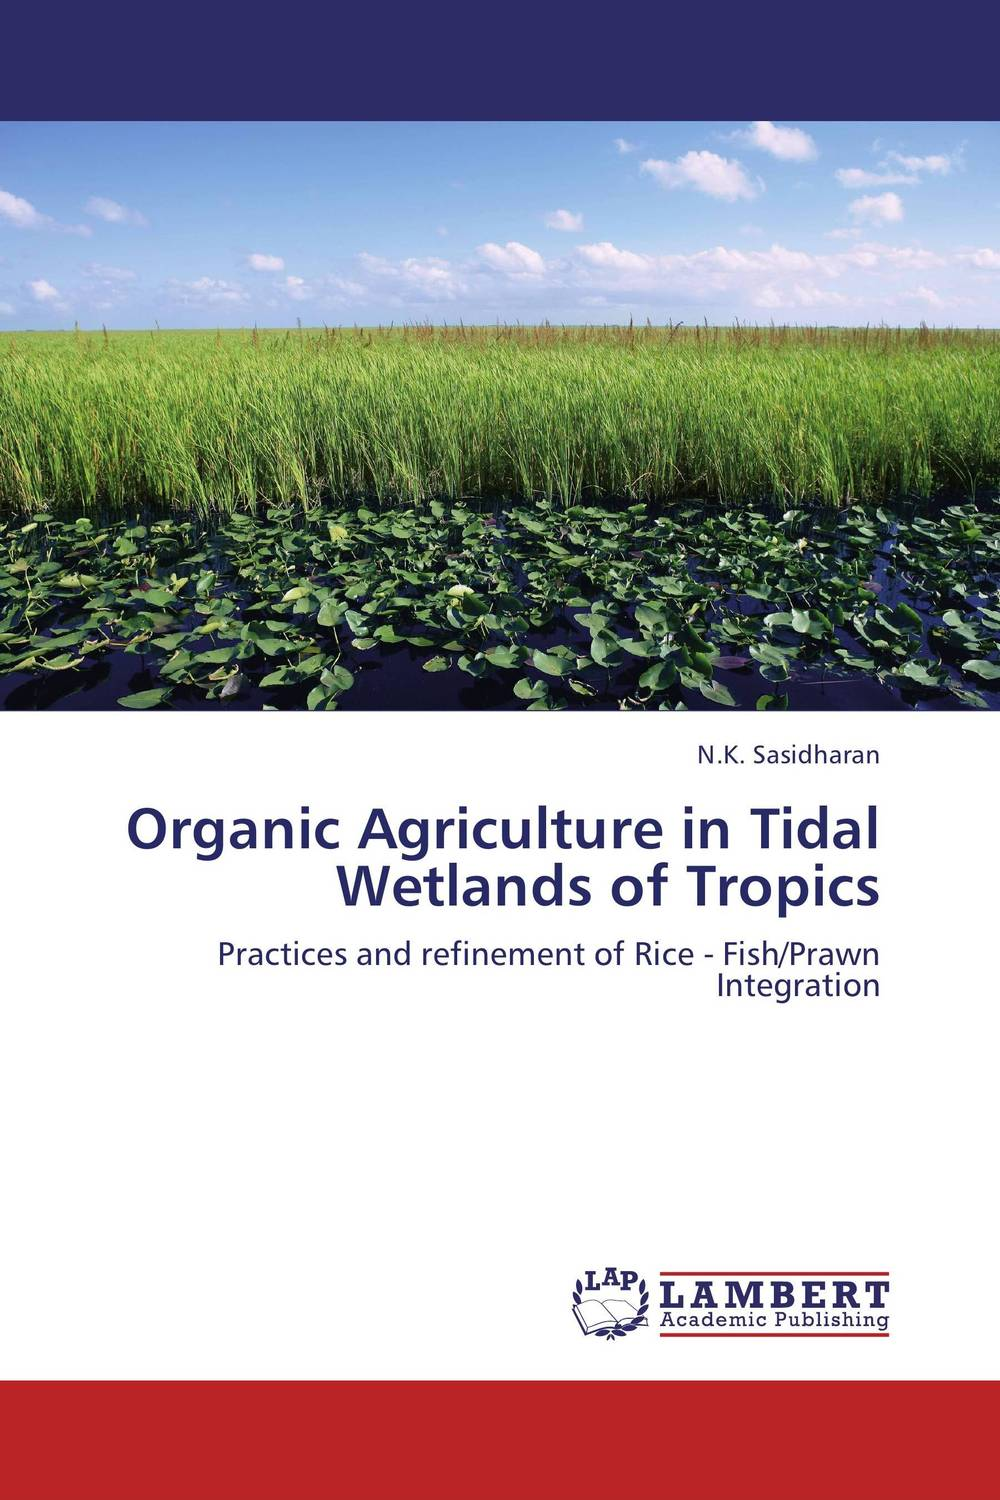 Organic Agriculture in Tidal Wetlands of Tropics matthew oluwasanmi sedowo rice production in the tropics a panacea for poverty and hunger